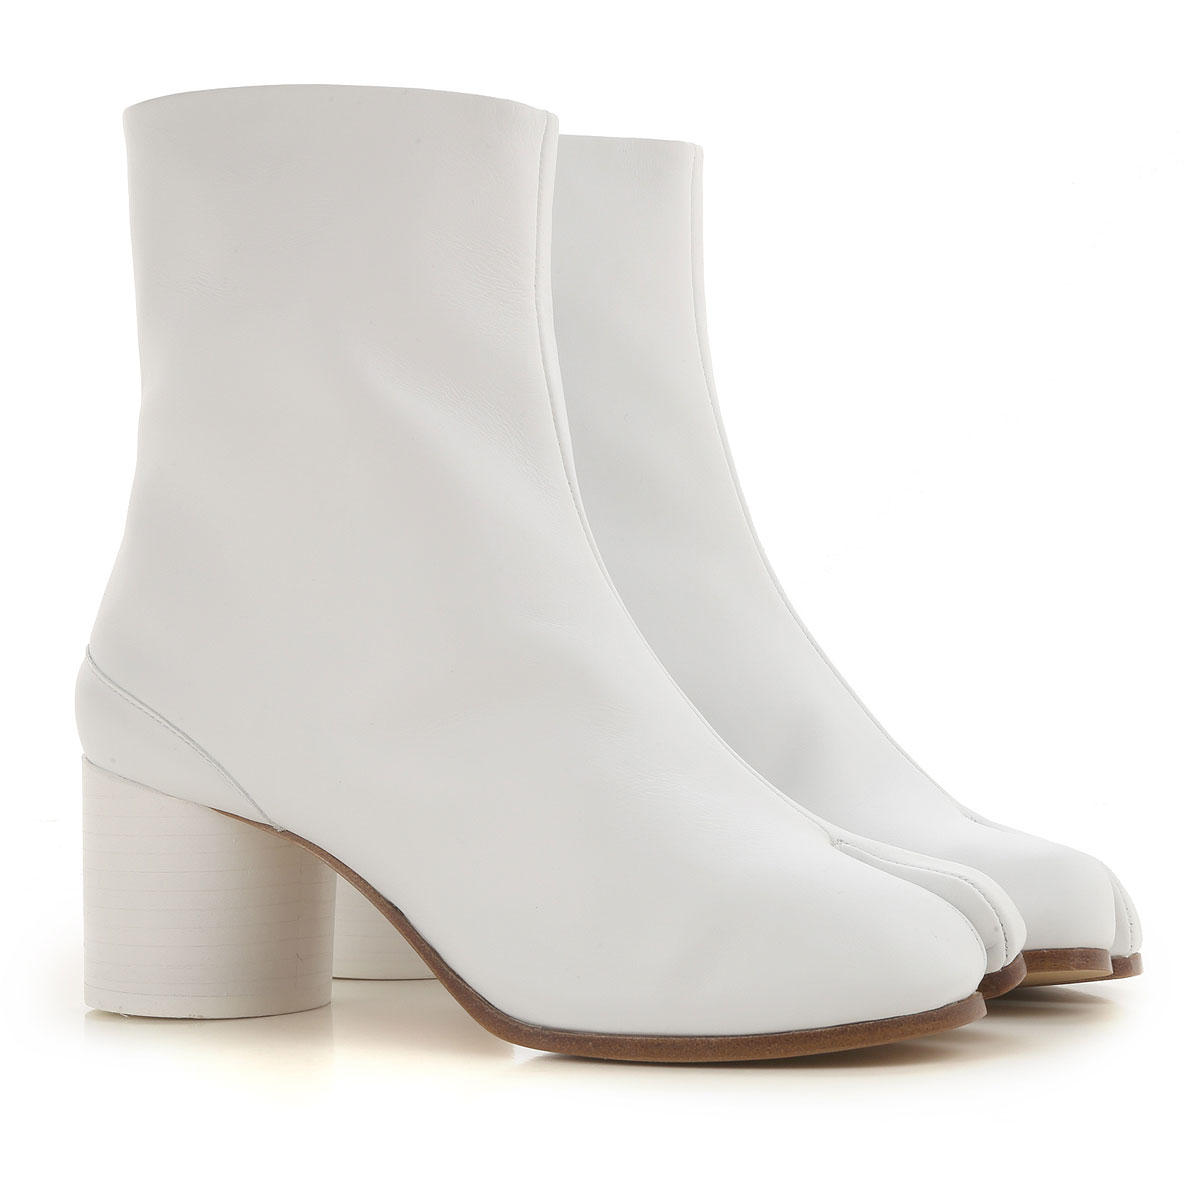 Maison Martin Margiela Boots for Women, Booties On Sale, White, Leather, 2019, 8.5 9